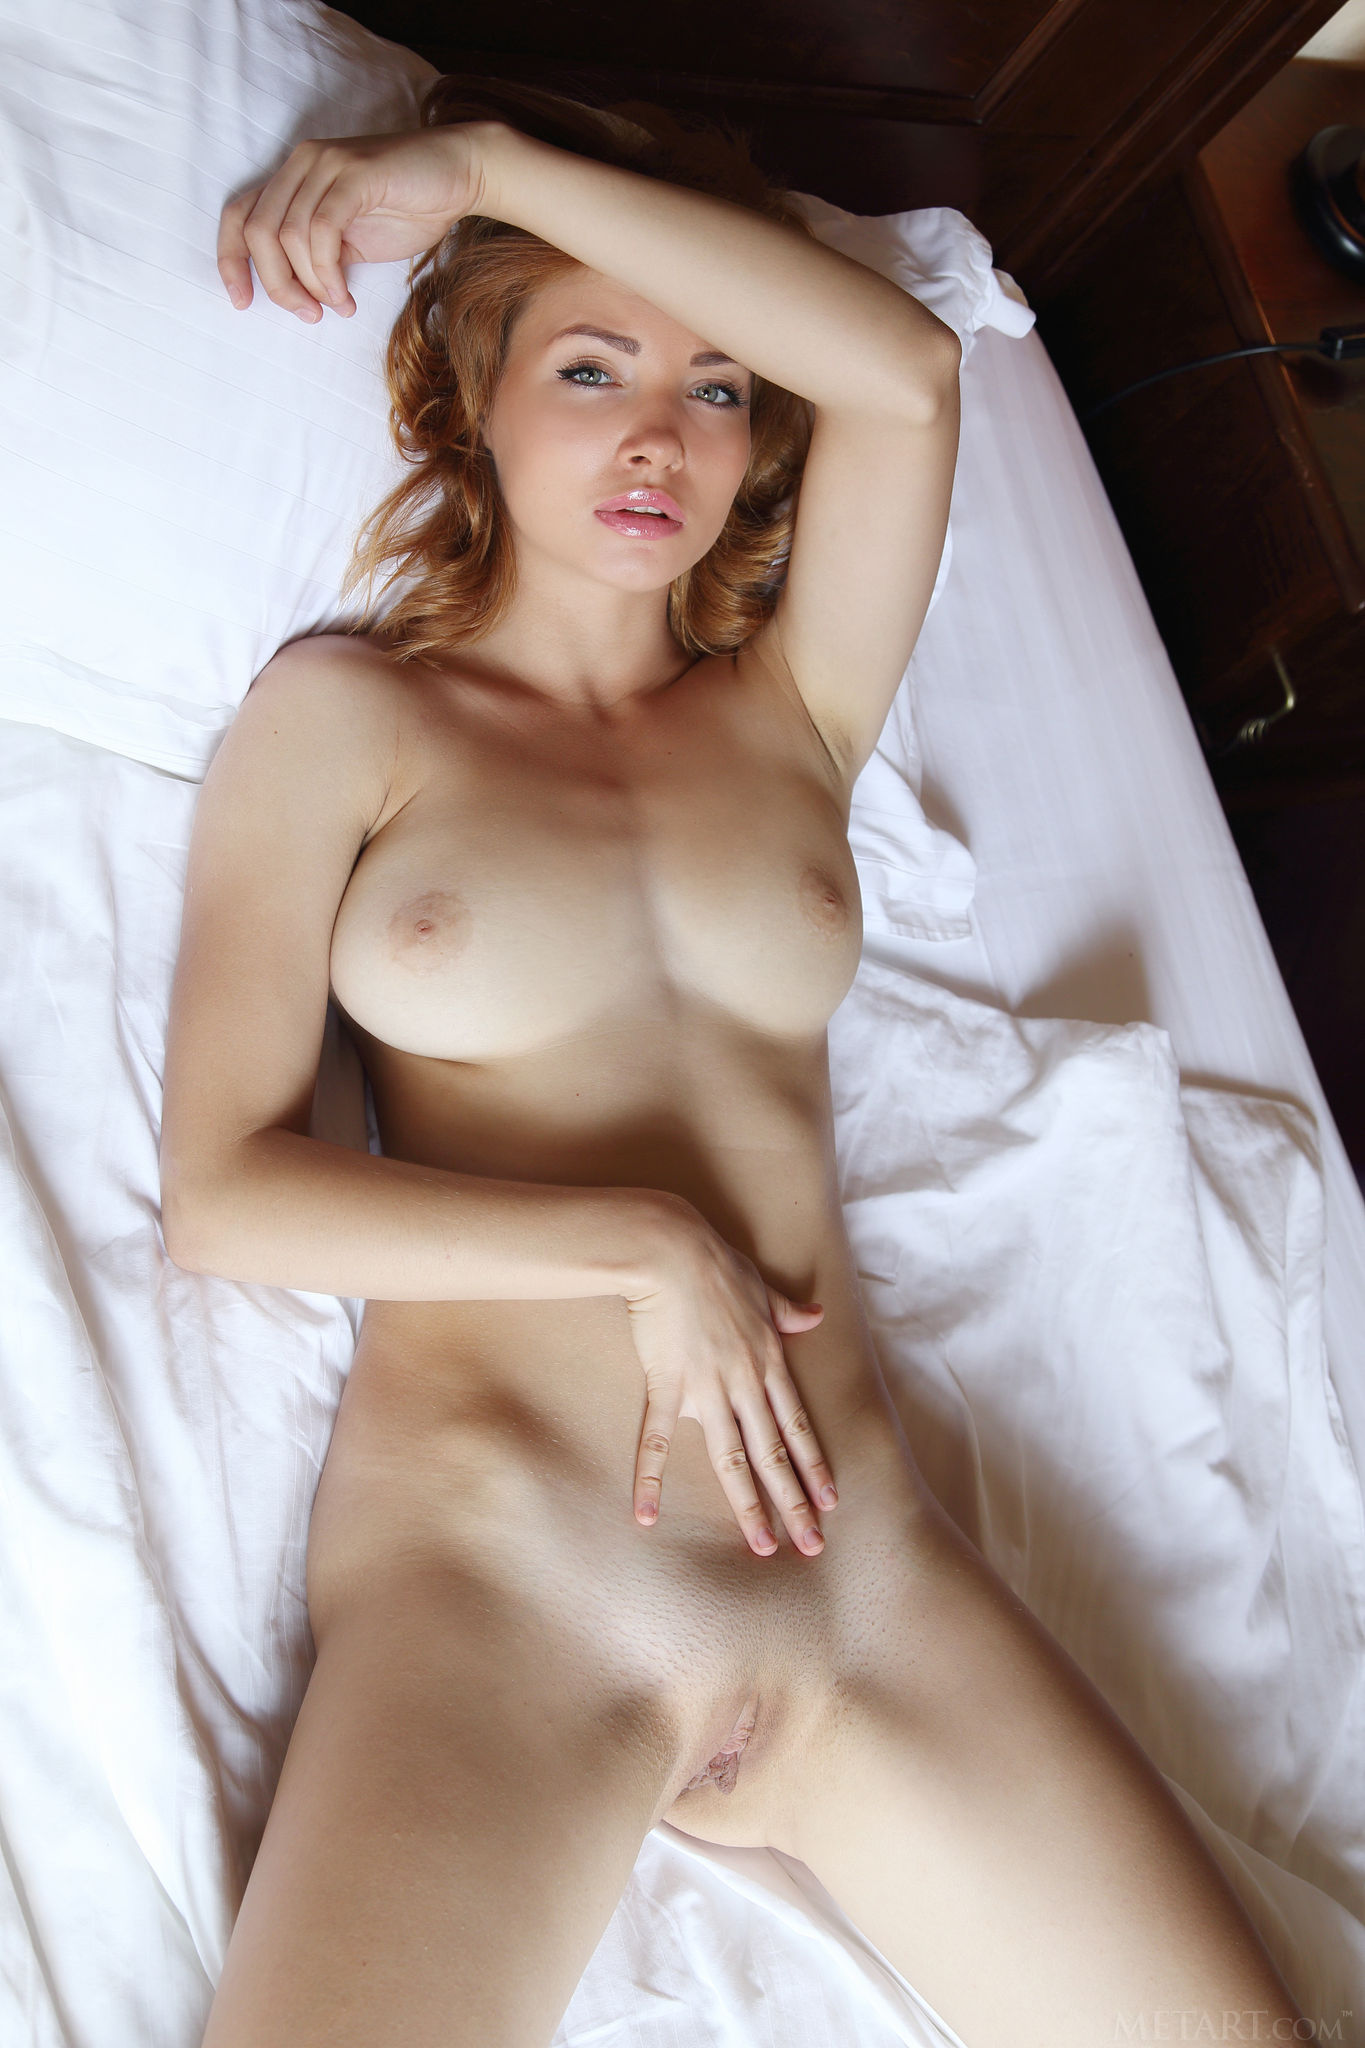 naked-girls-in-bedroom-nude-mix-vol4-49